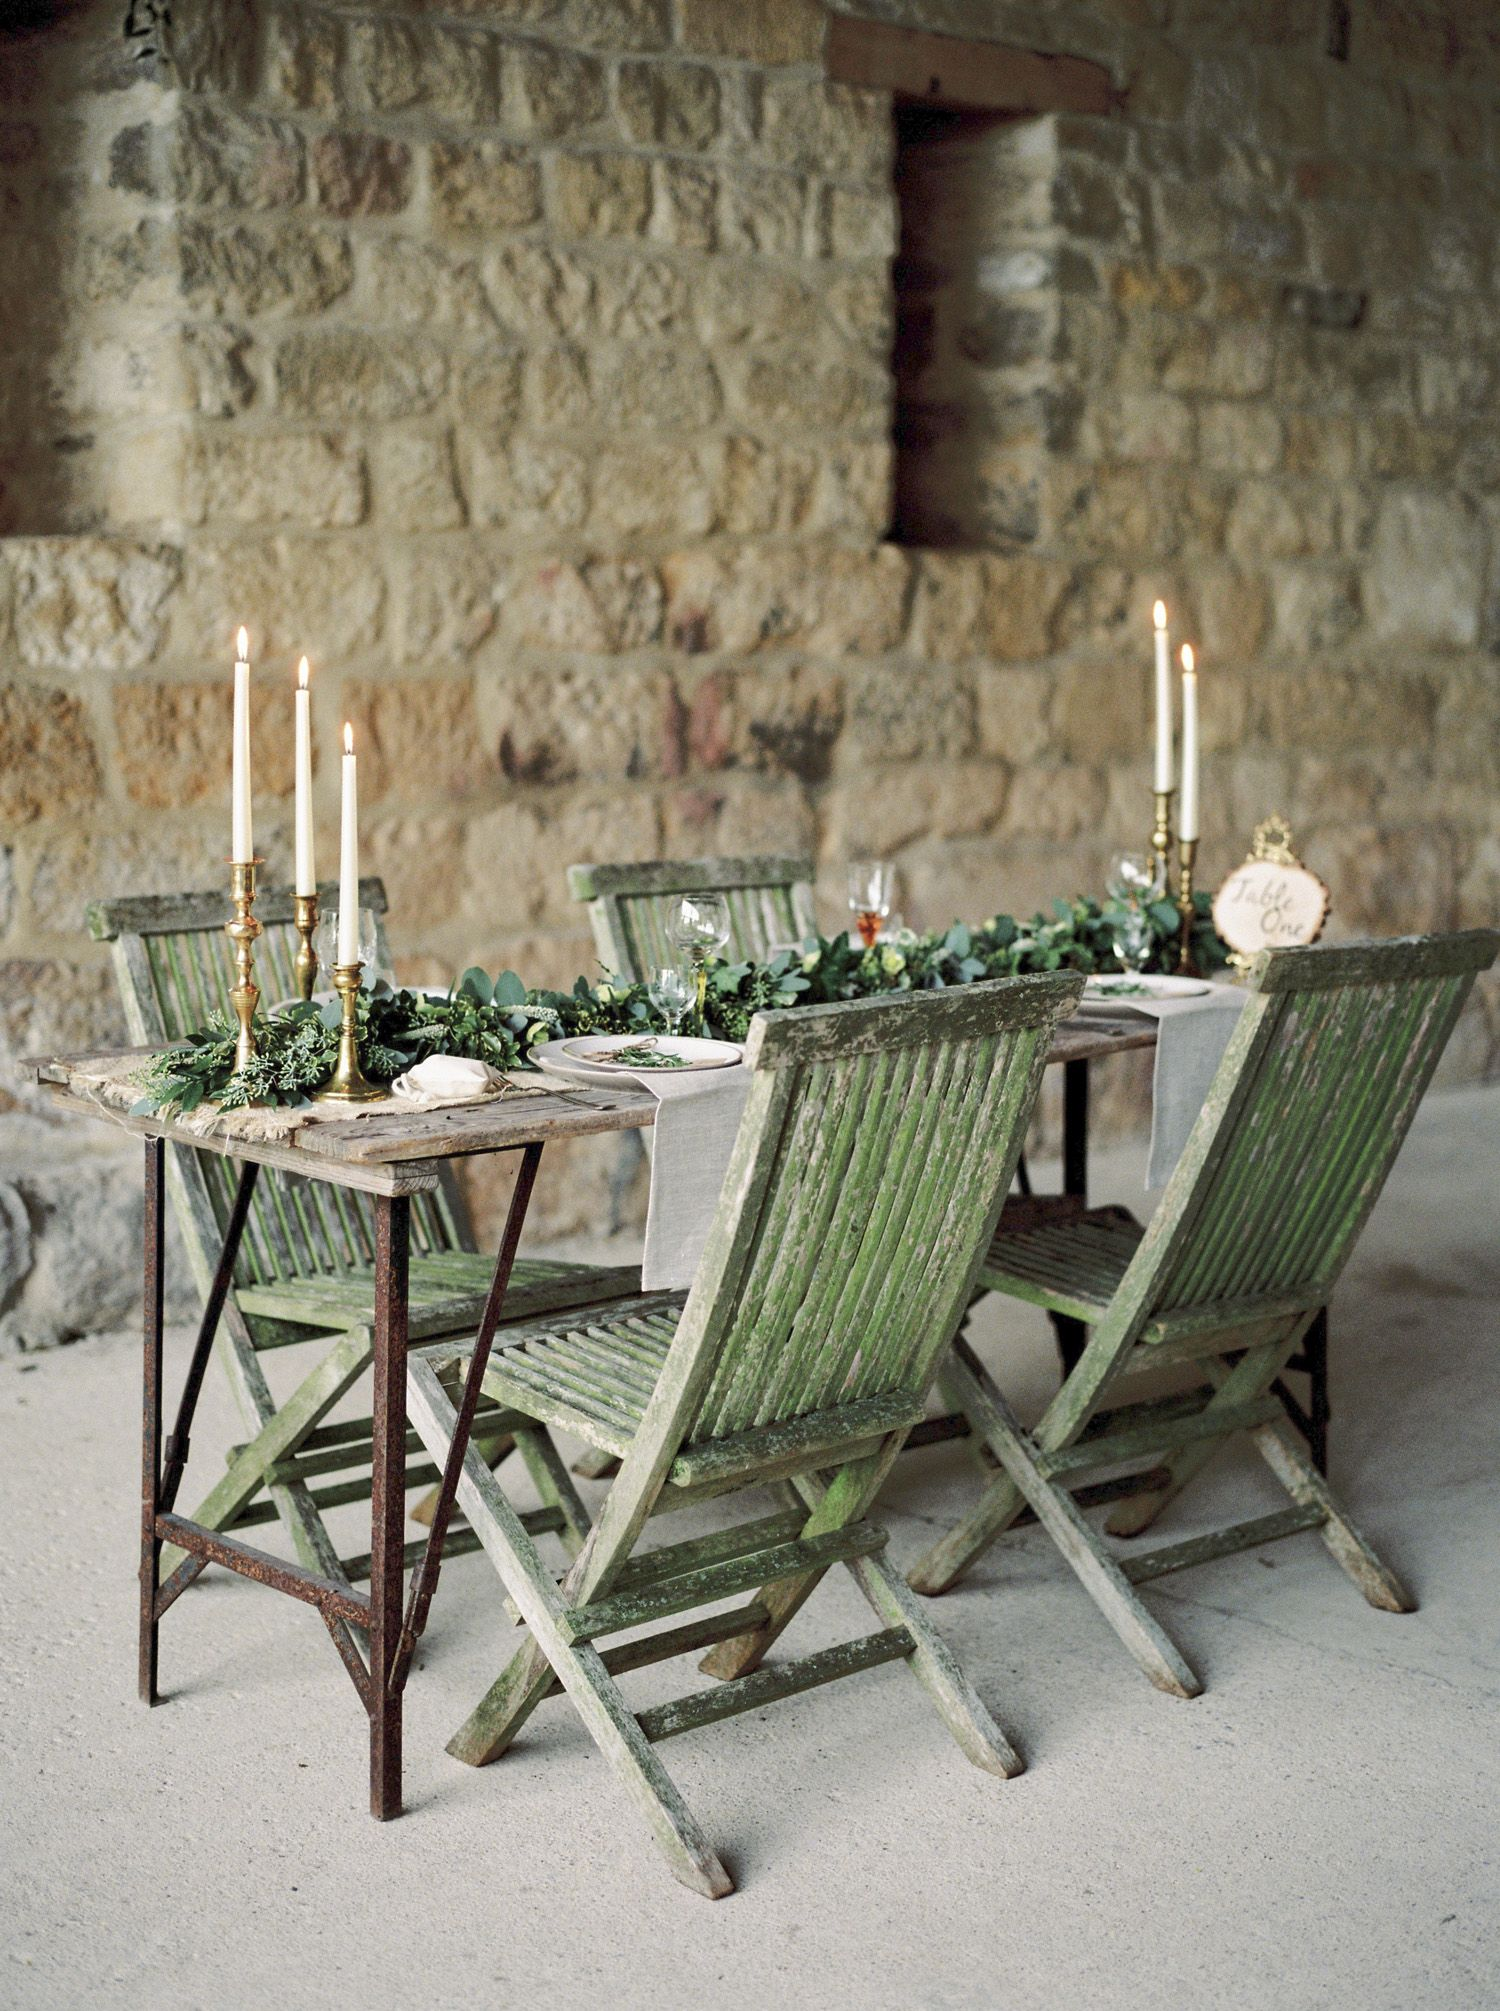 Olive Table Runner And Candles